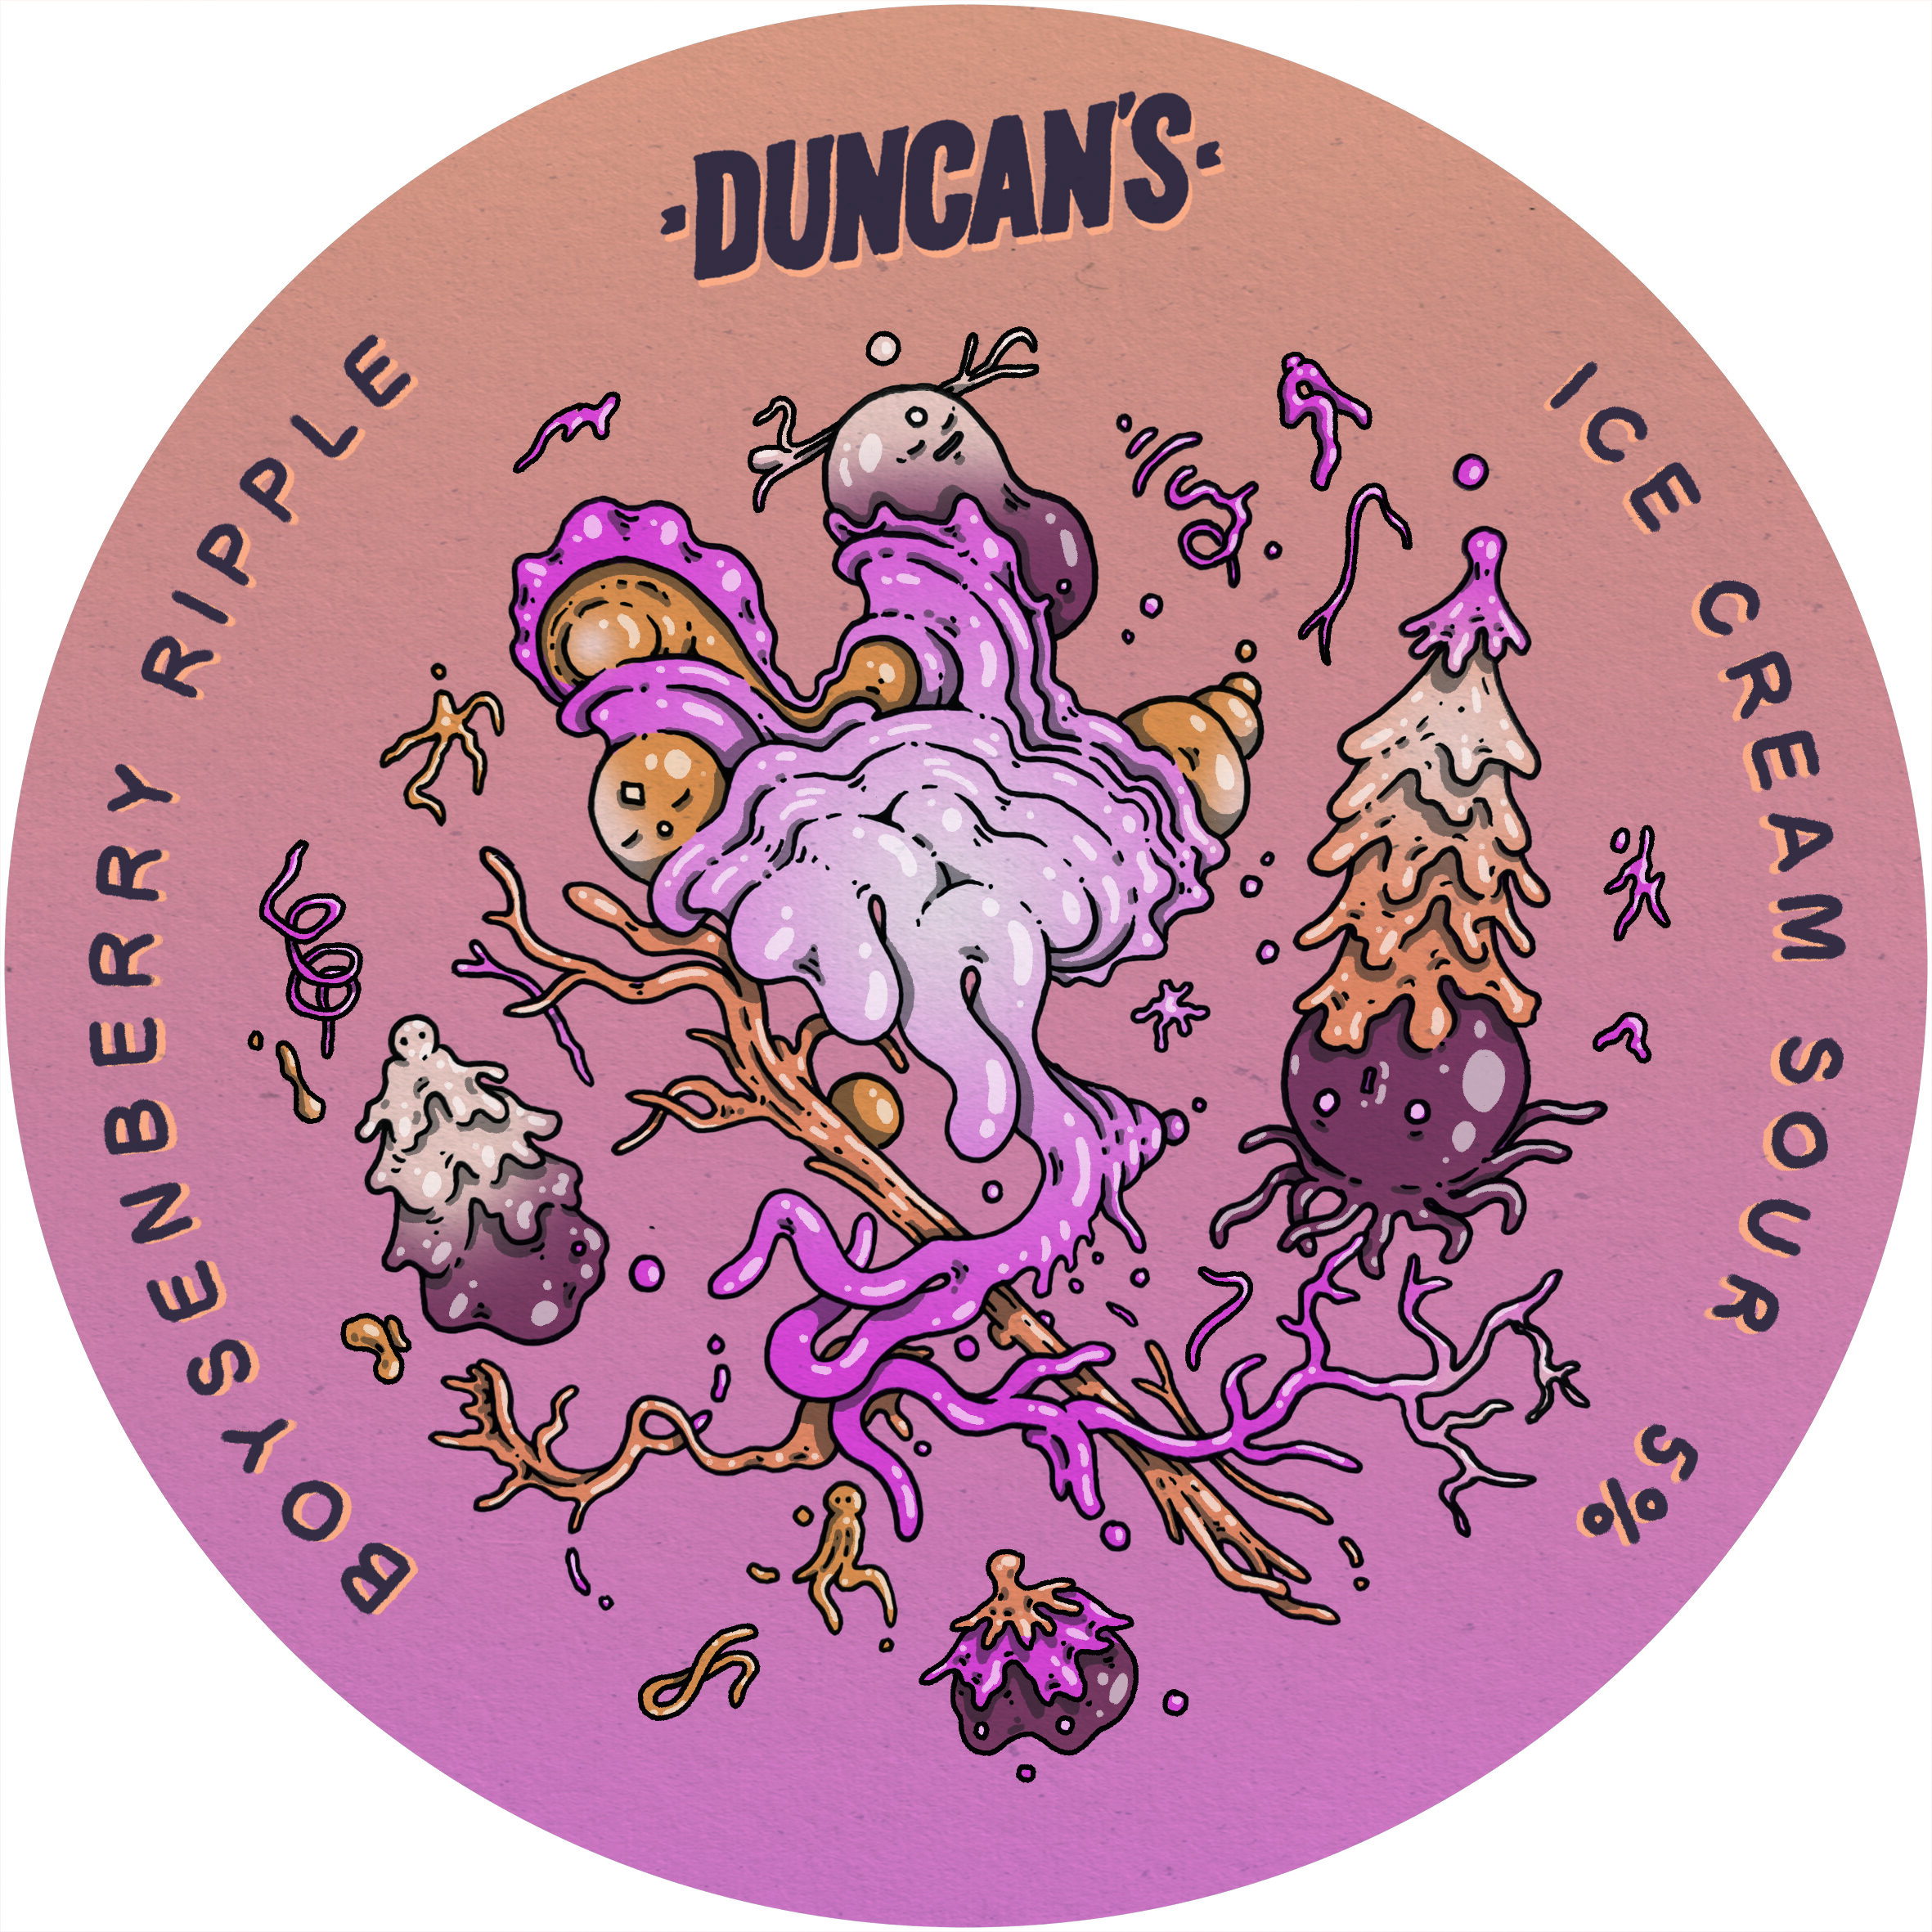 duncans-boysenberry-ripple-tap.jpg